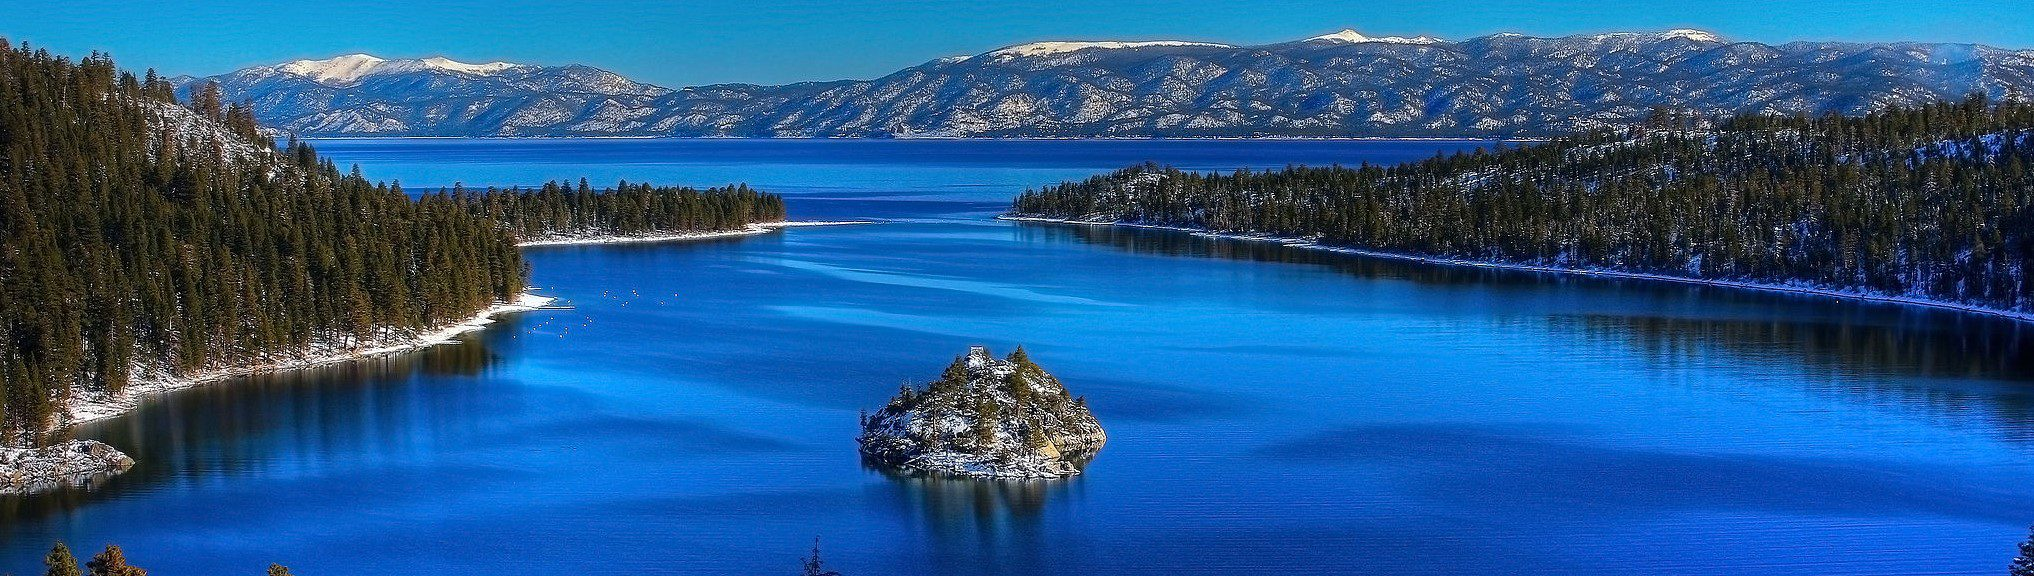 Picture of Emerald bay and Lake Tahoe